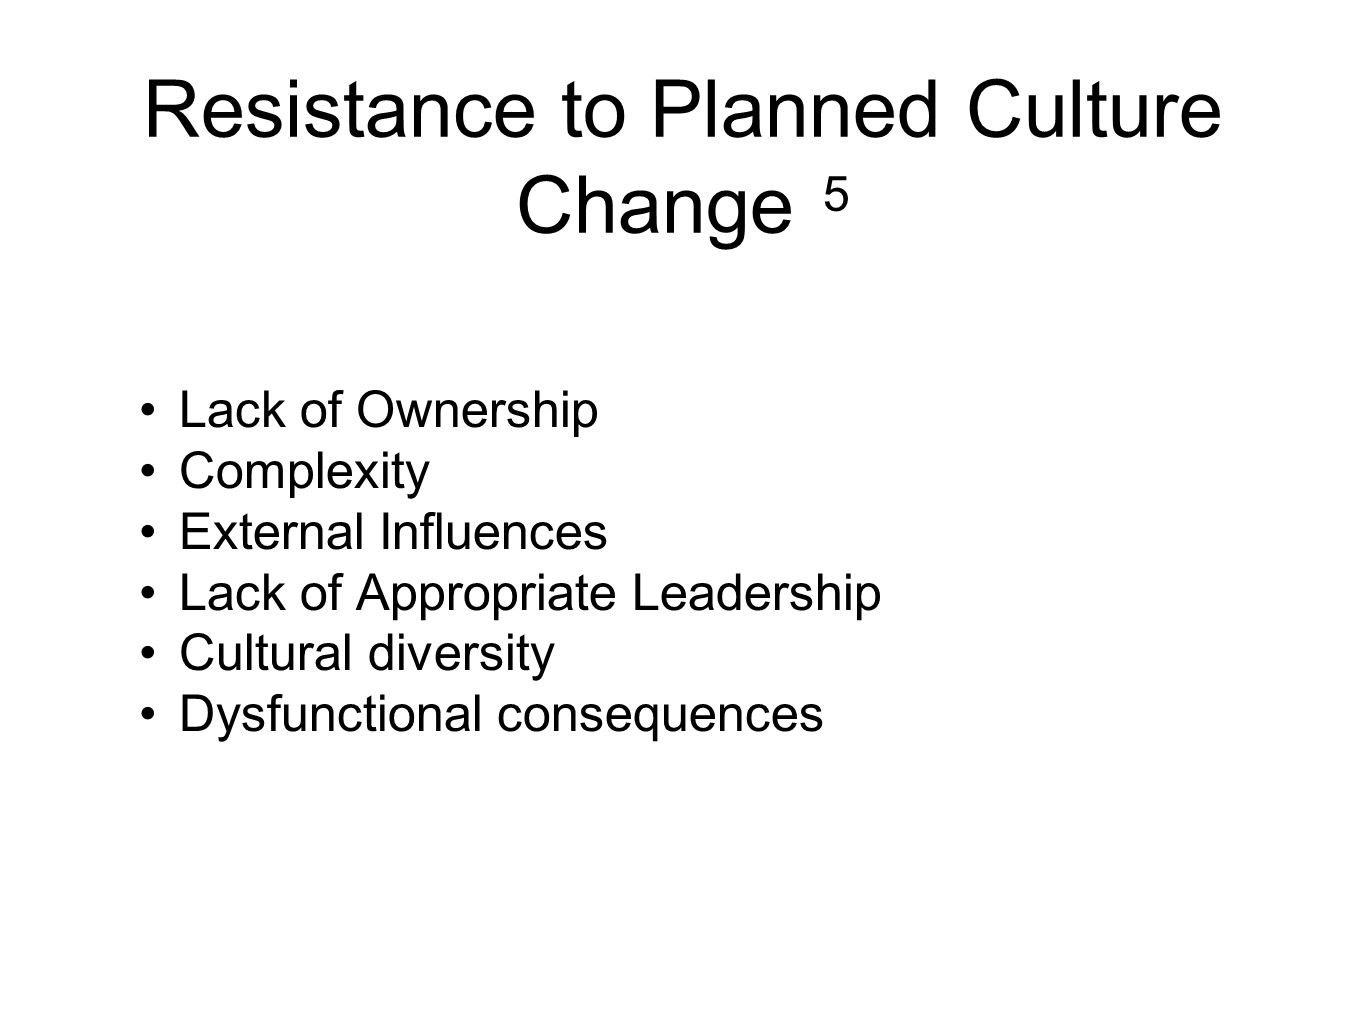 Resistance to Planned Culture Change 5 Lack of Ownership Complexity External Influences Lack of Appropriate Leadership Cultural diversity Dysfunctional consequences